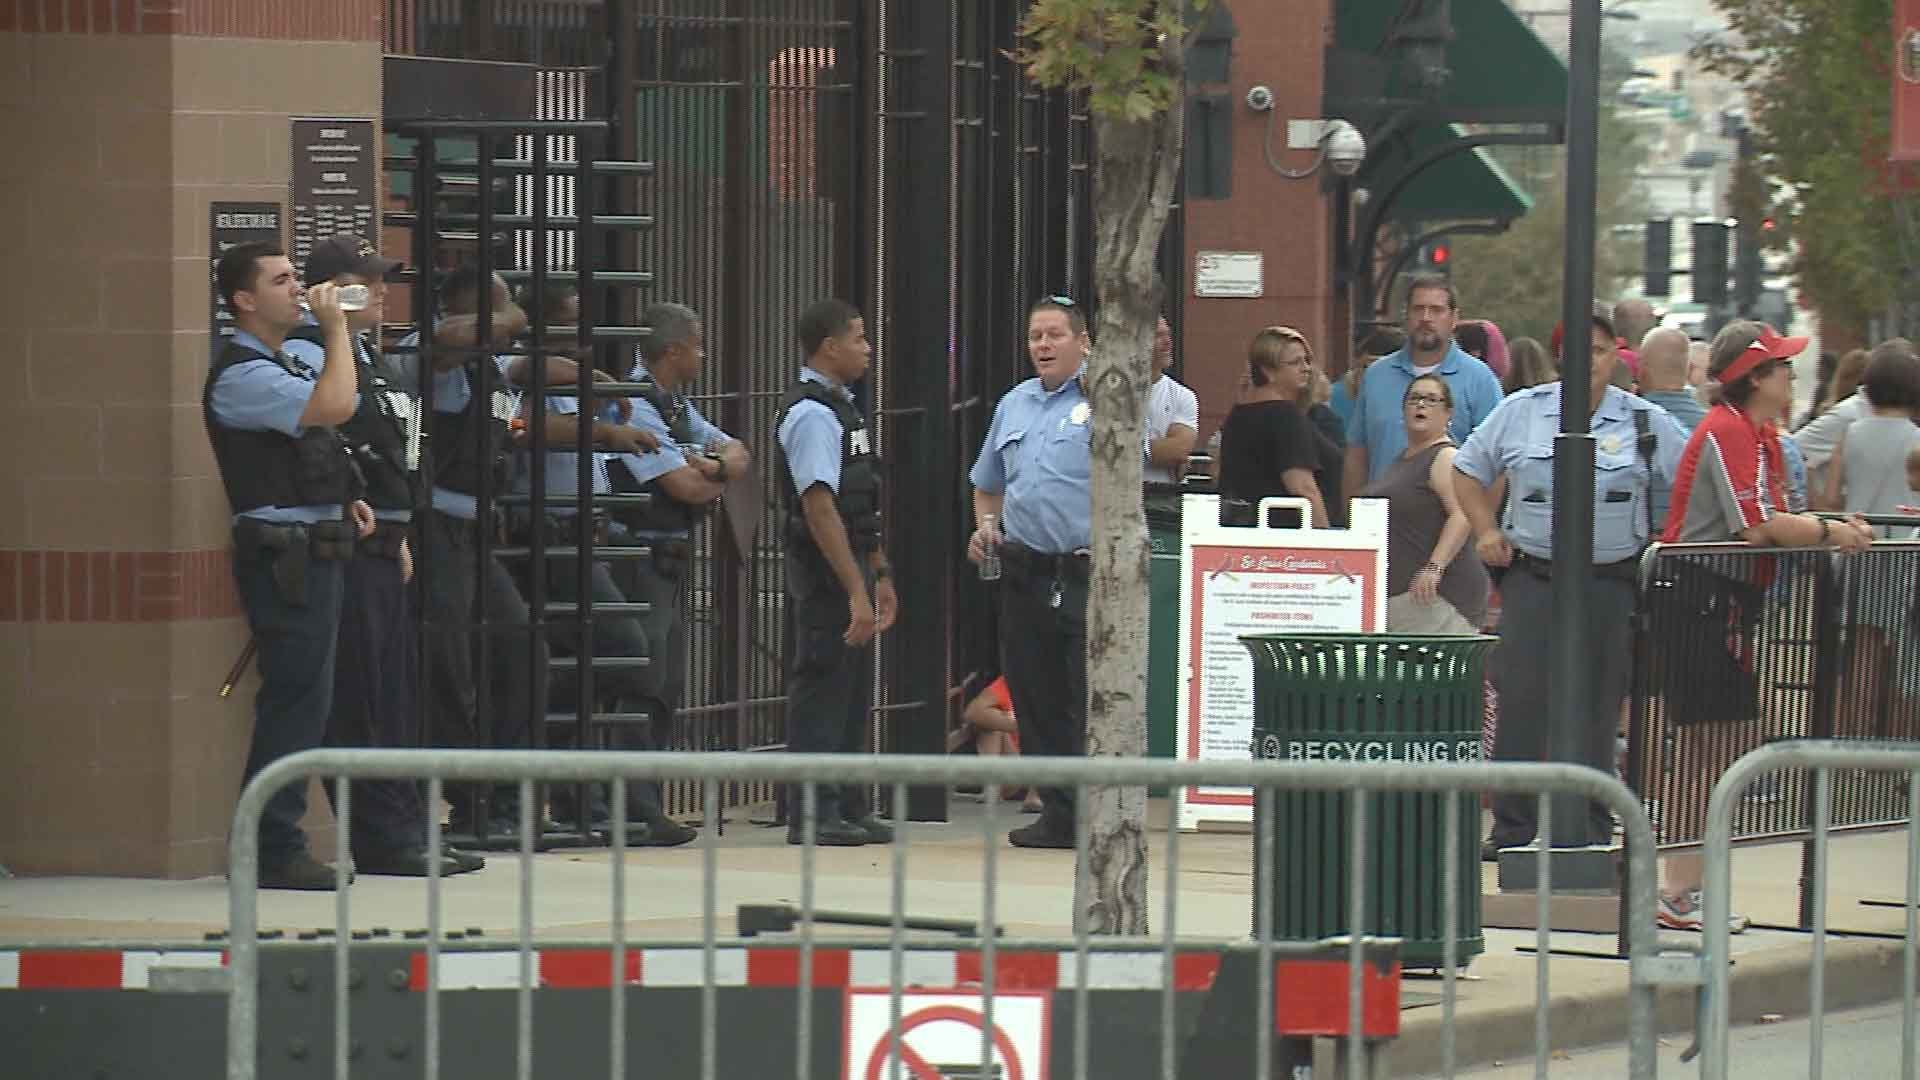 Those who attended the Billy Joel concert at Busch Stadium noticed an increased security presence. Credit: KMOV